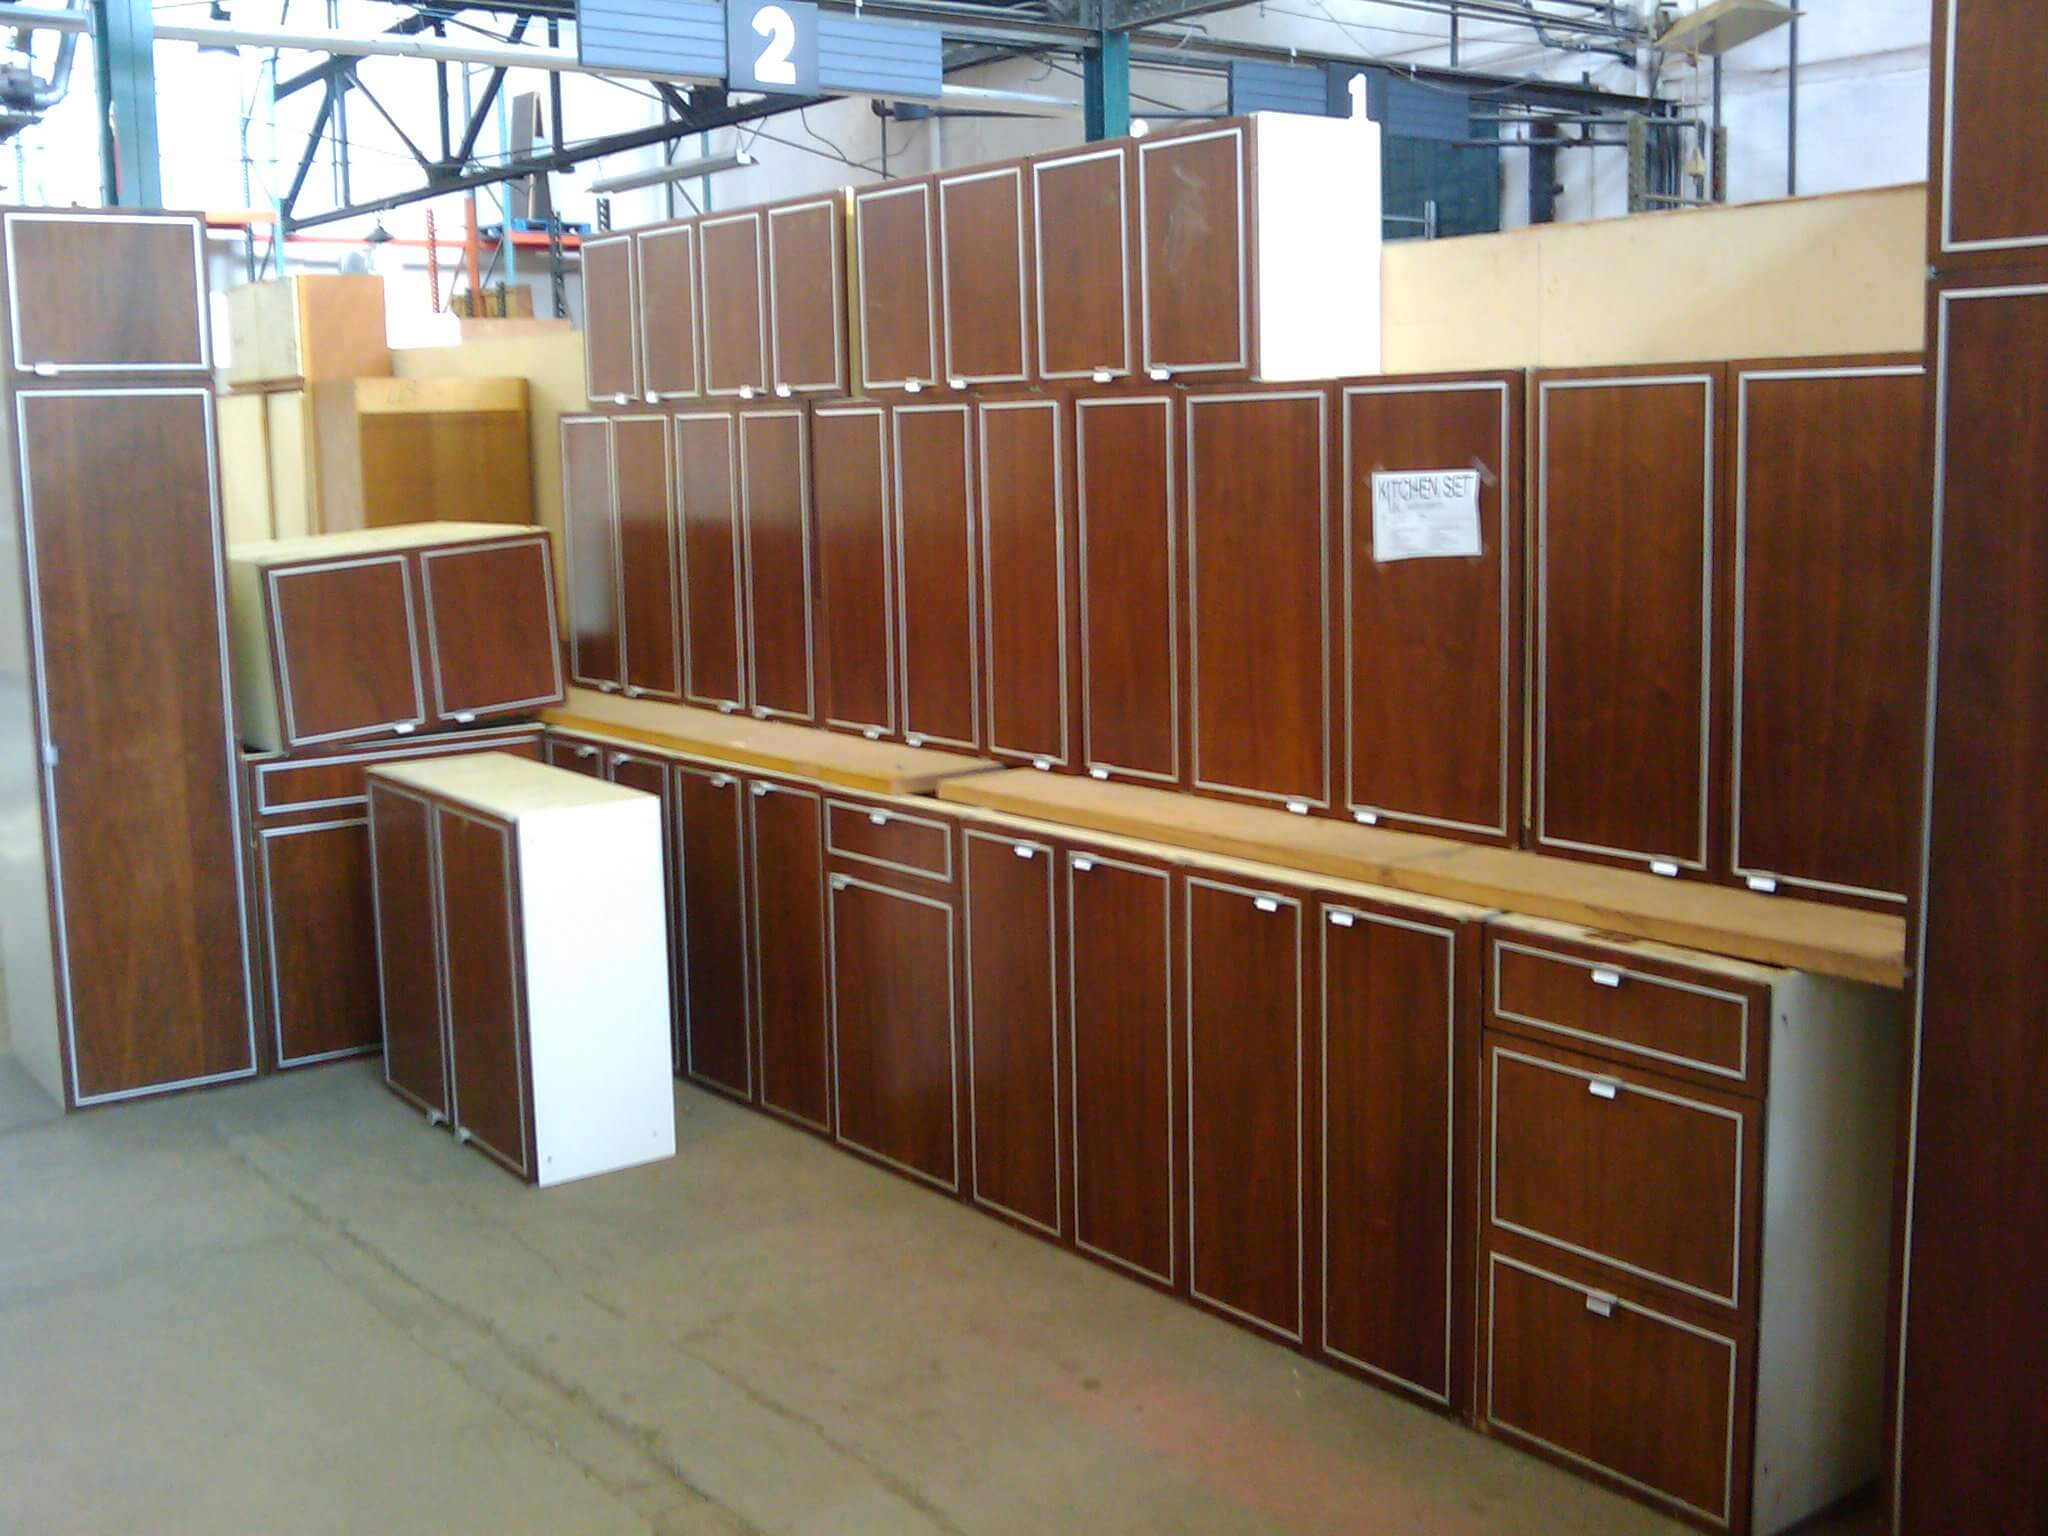 Old Kitchen Cabinets For Sale Fabulous St. Charles metal kitchen cabinets for sale in Pittsburgh